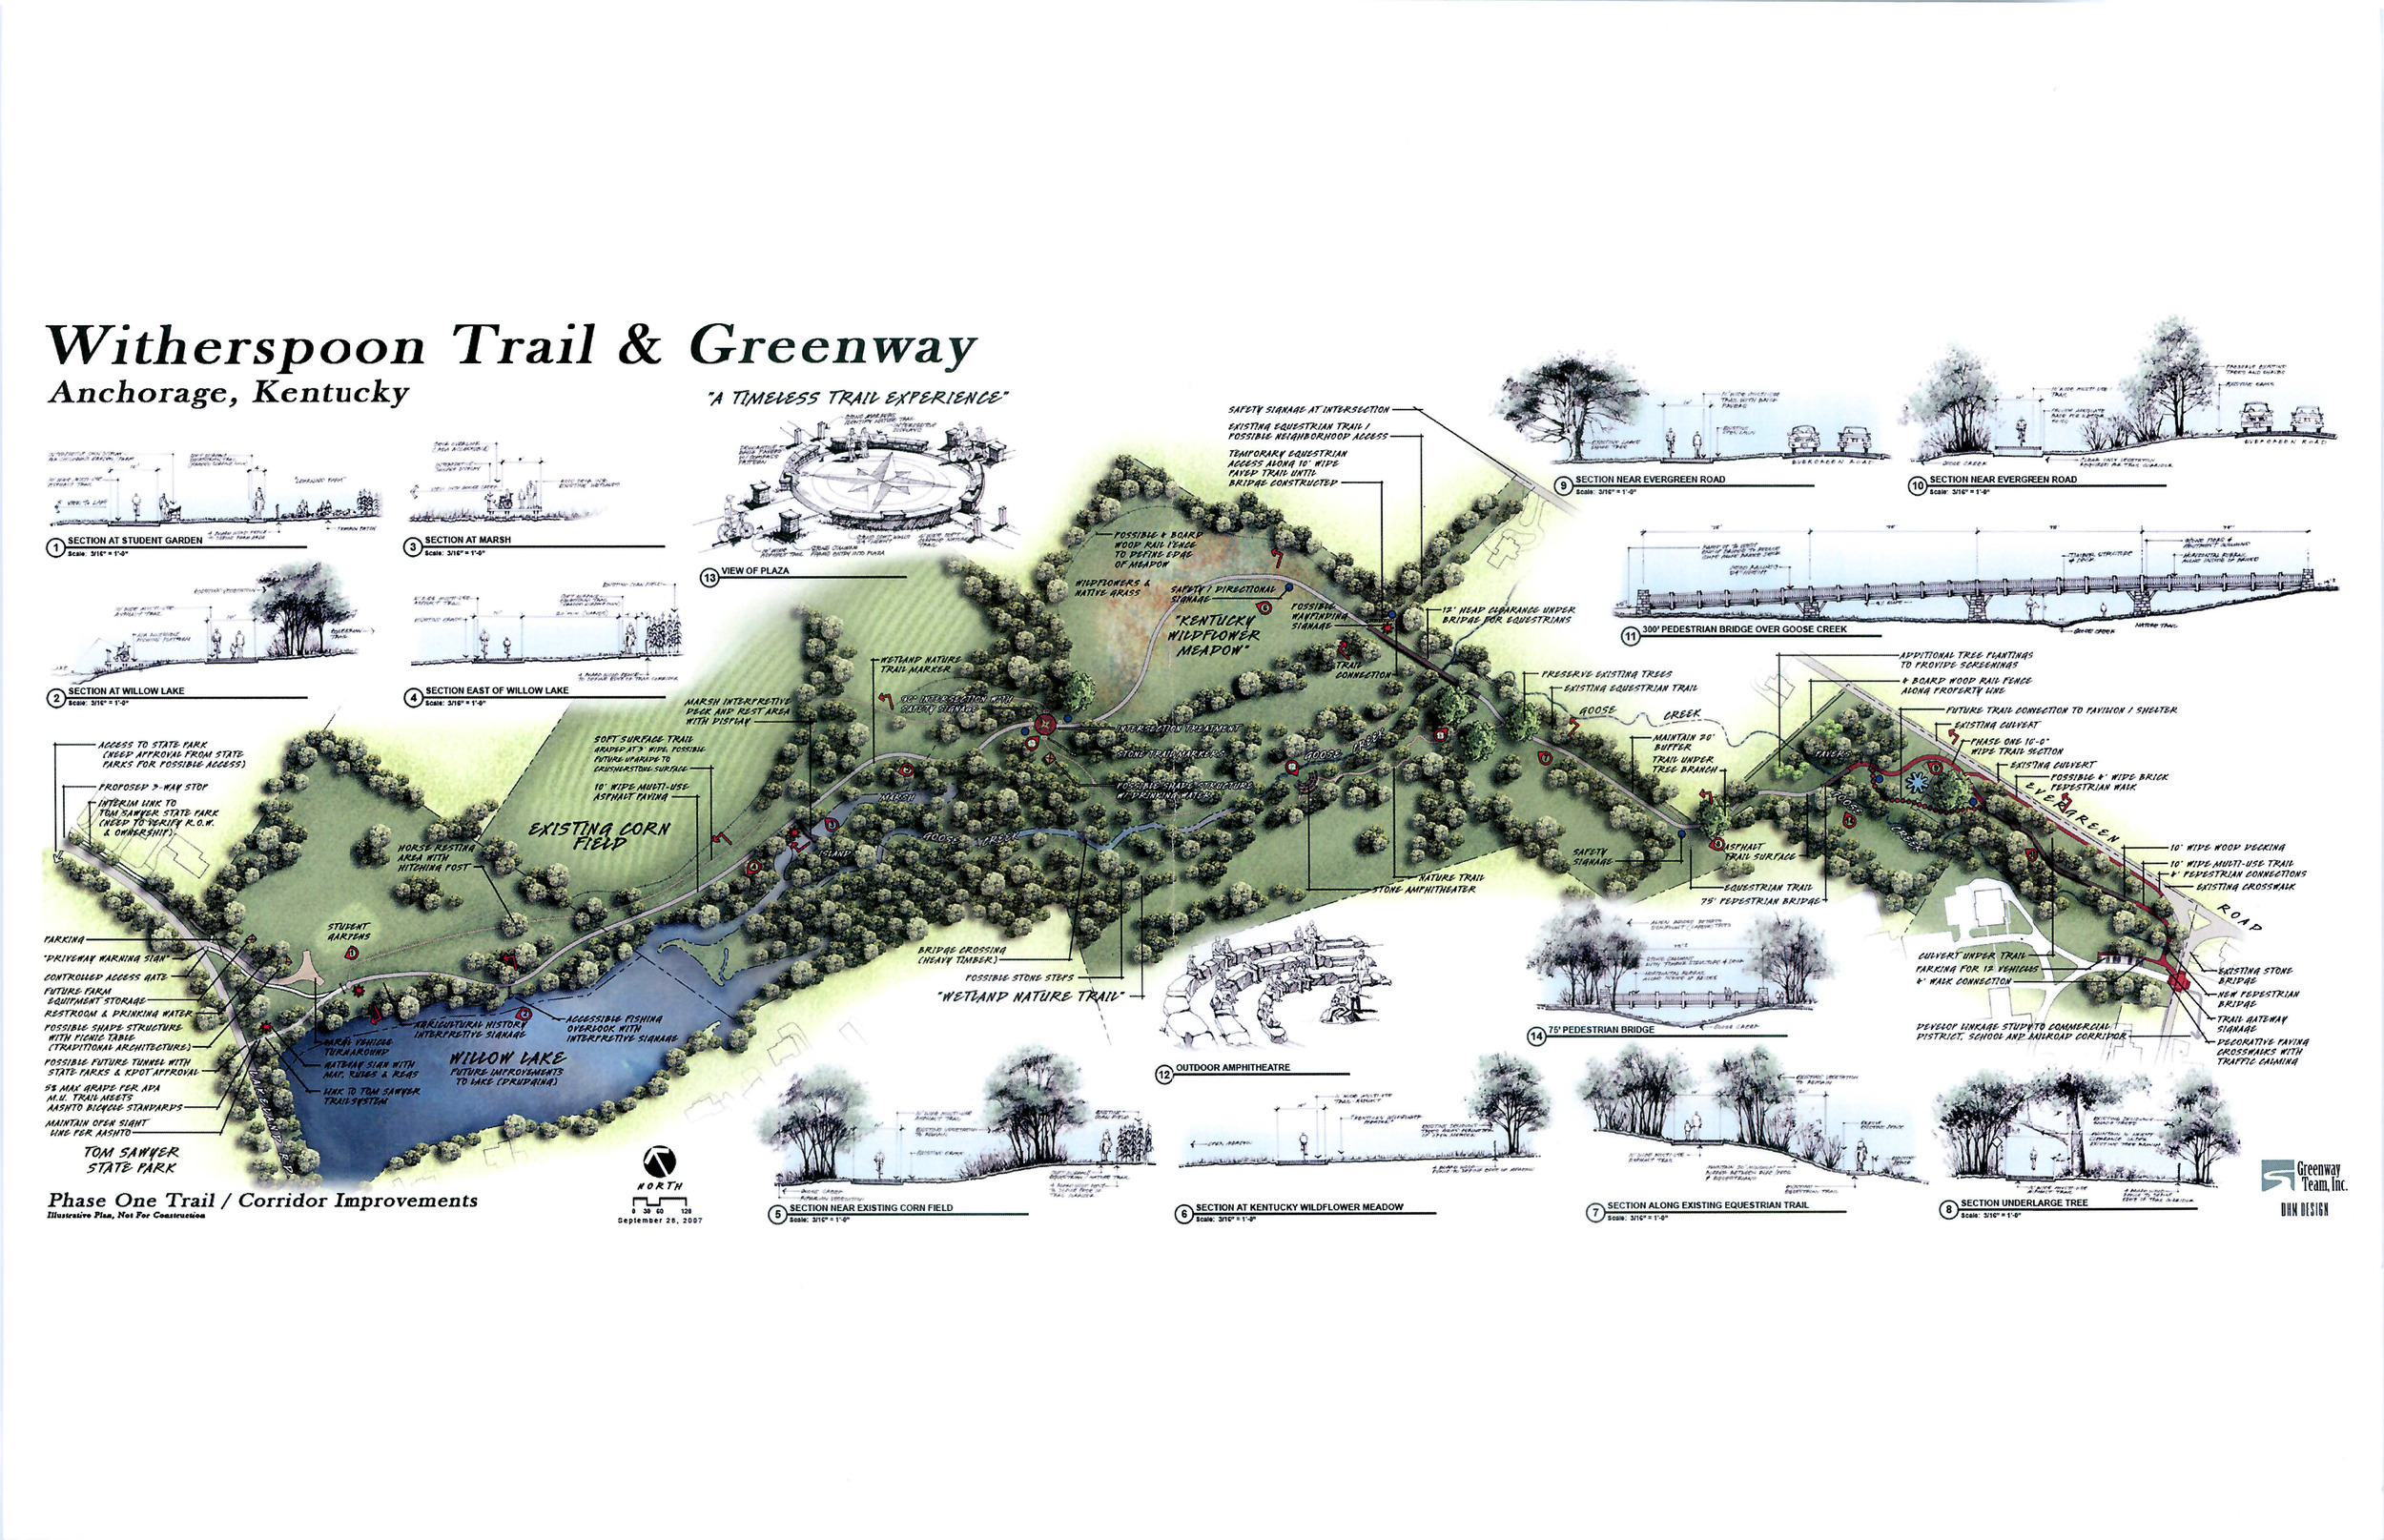 Witherspoon Trail & Greenway - Kentucky